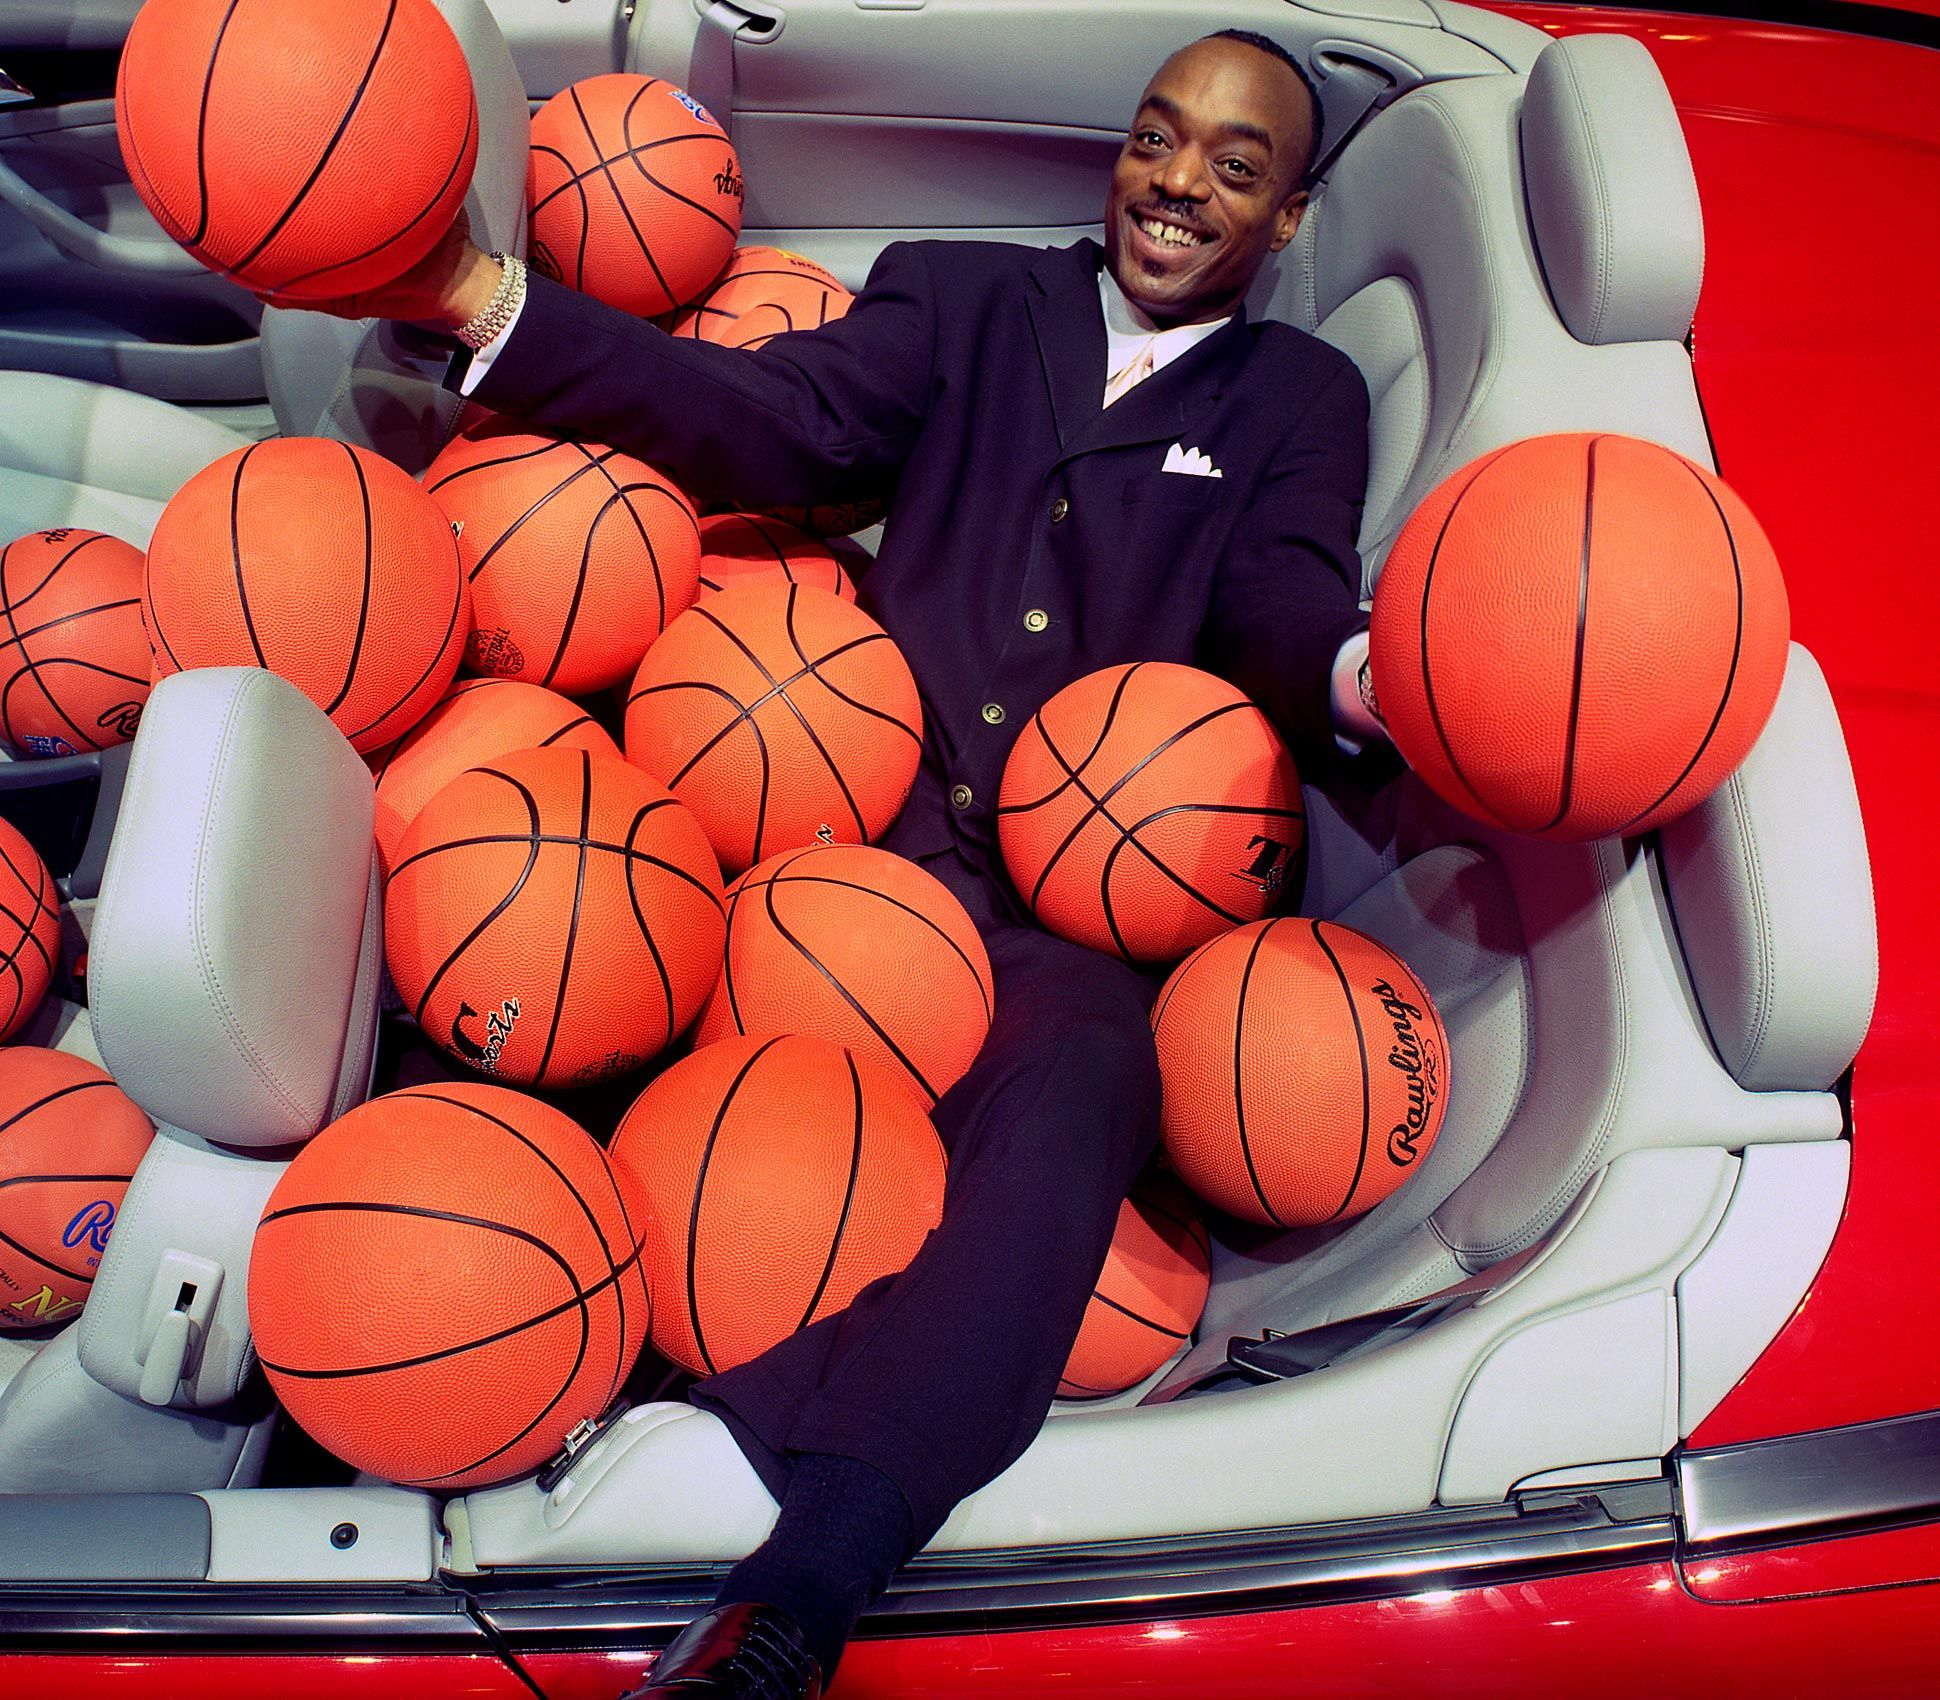 Basketball_car.jpg